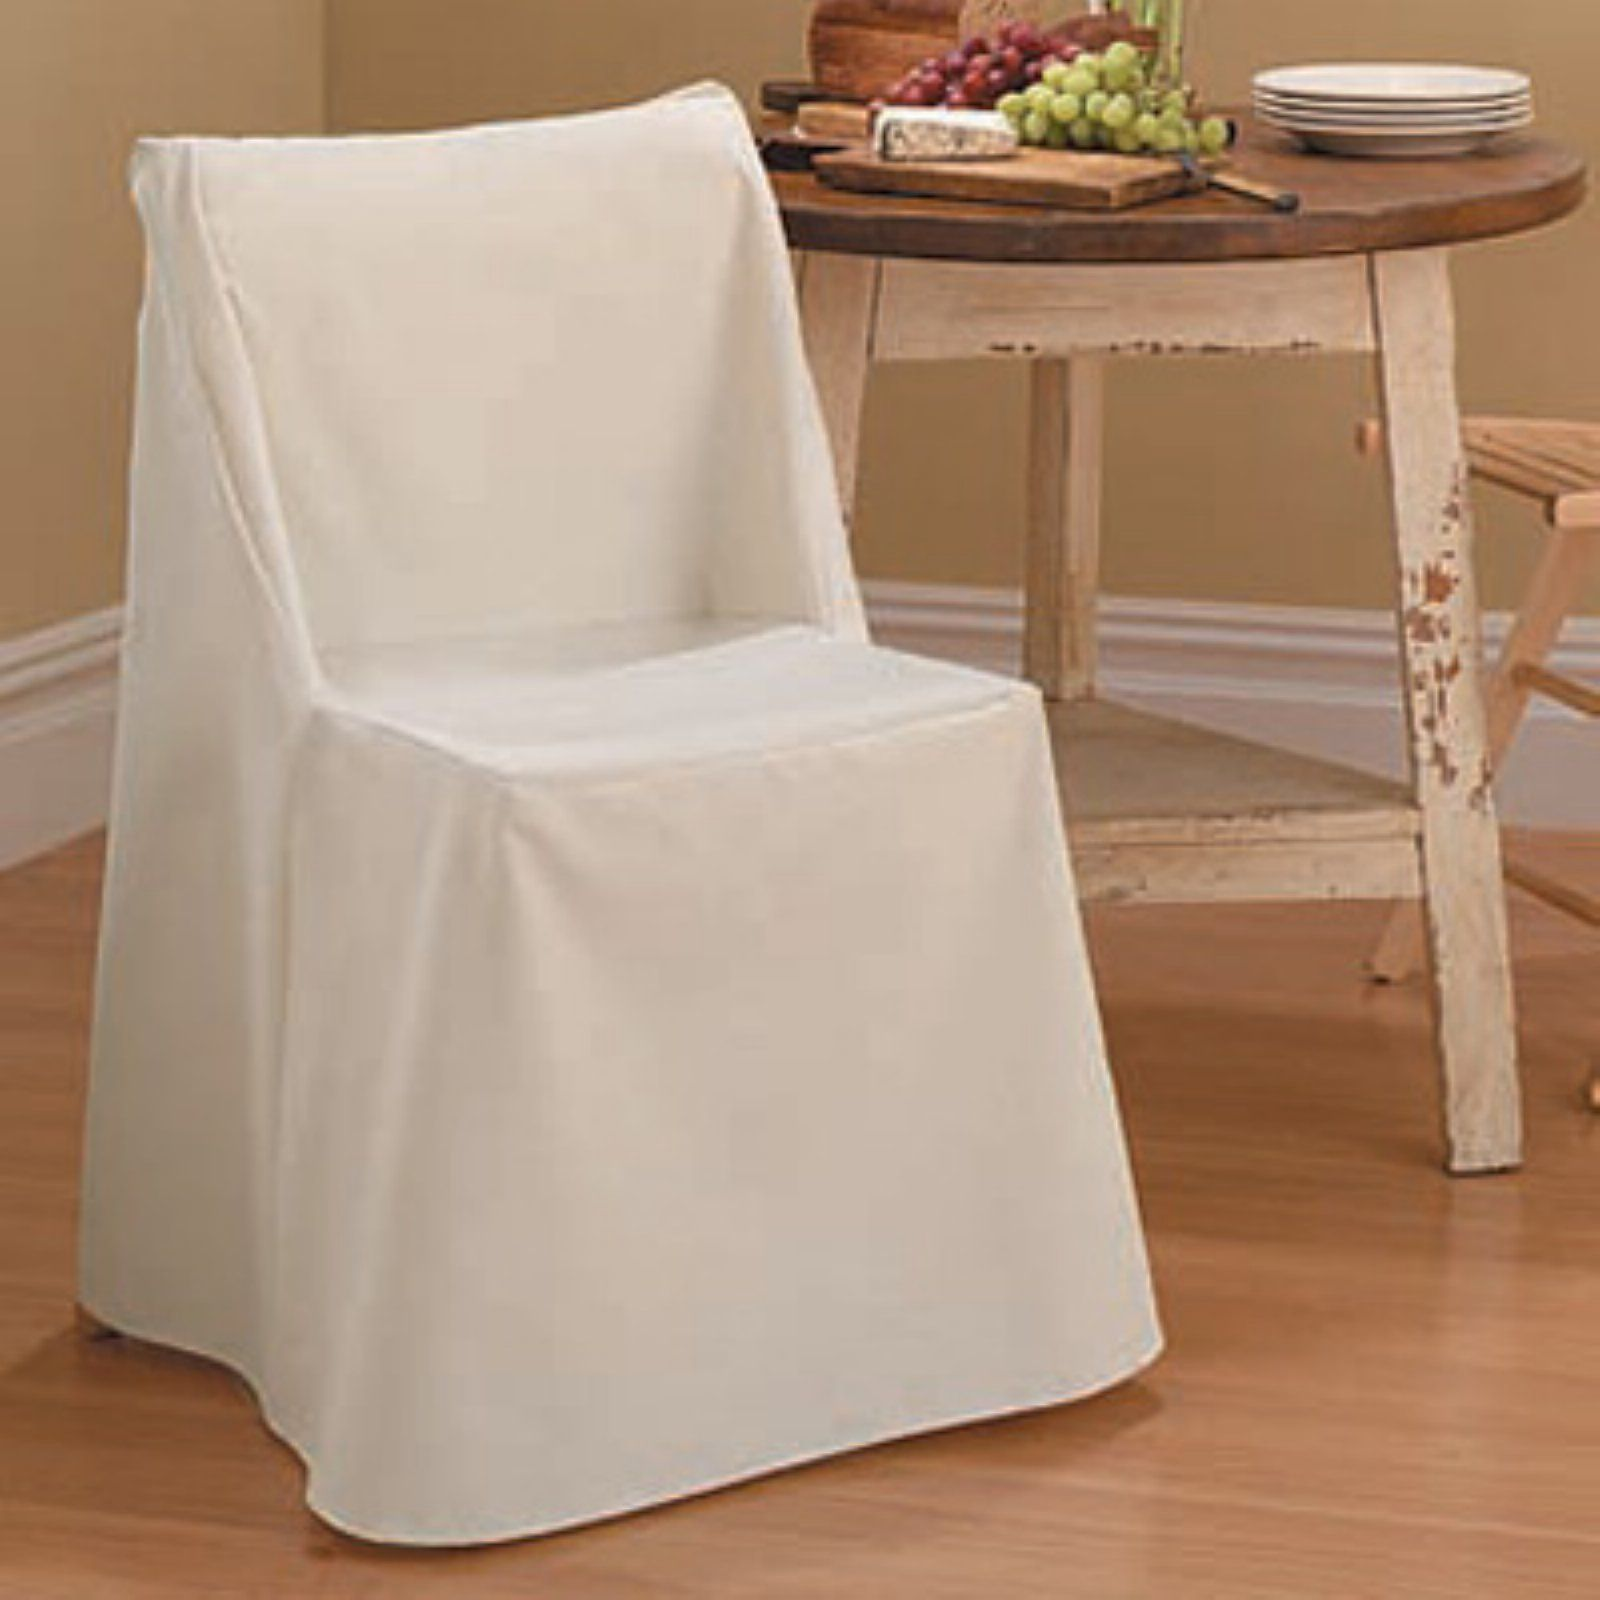 Remarkable Sure Fit Cotton Duck Folding Chair Cover Natural Products Andrewgaddart Wooden Chair Designs For Living Room Andrewgaddartcom